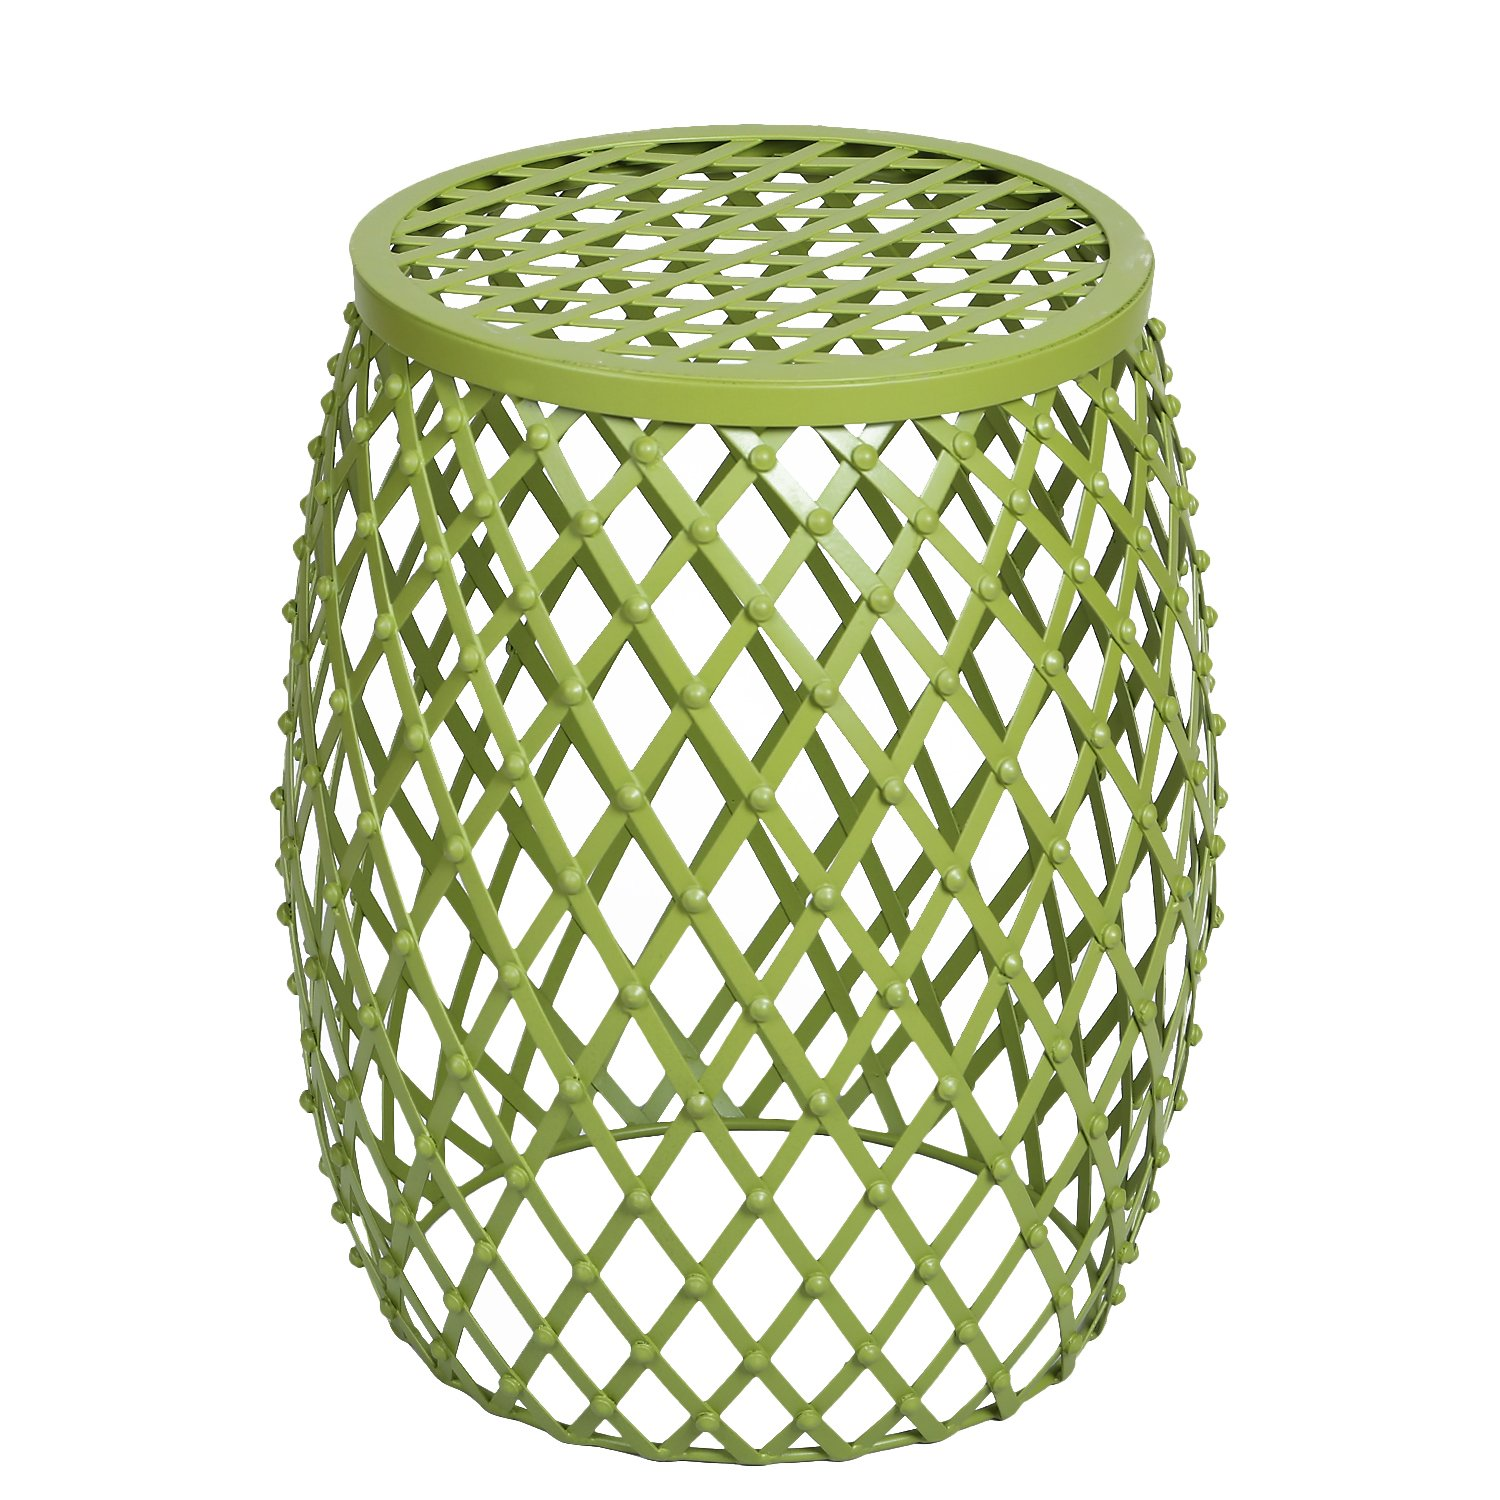 joveco stylish metal drum wire round end table side outdoor sofa green kitchen dining mid century modern chairs furniture sets accent home decor ornaments chair with usb port very